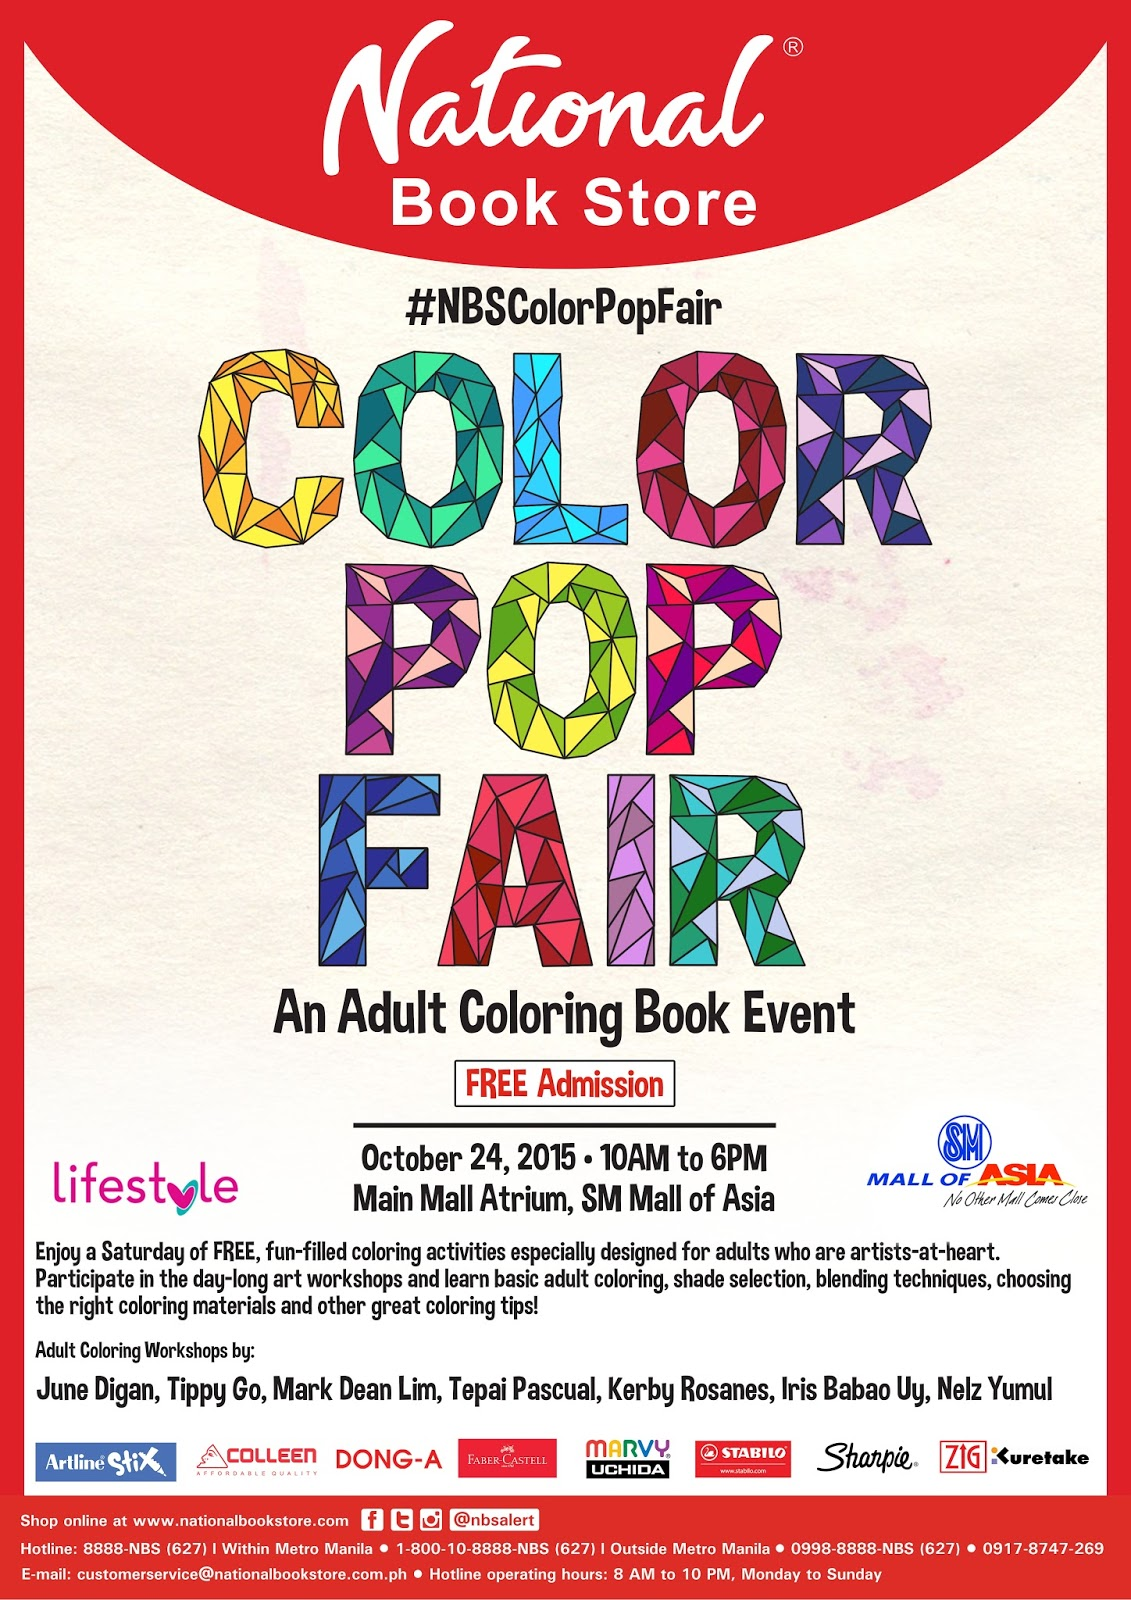 Be Sure To Attend The Color Pop Fair Hosted By National Book Store And Its Partners FREE